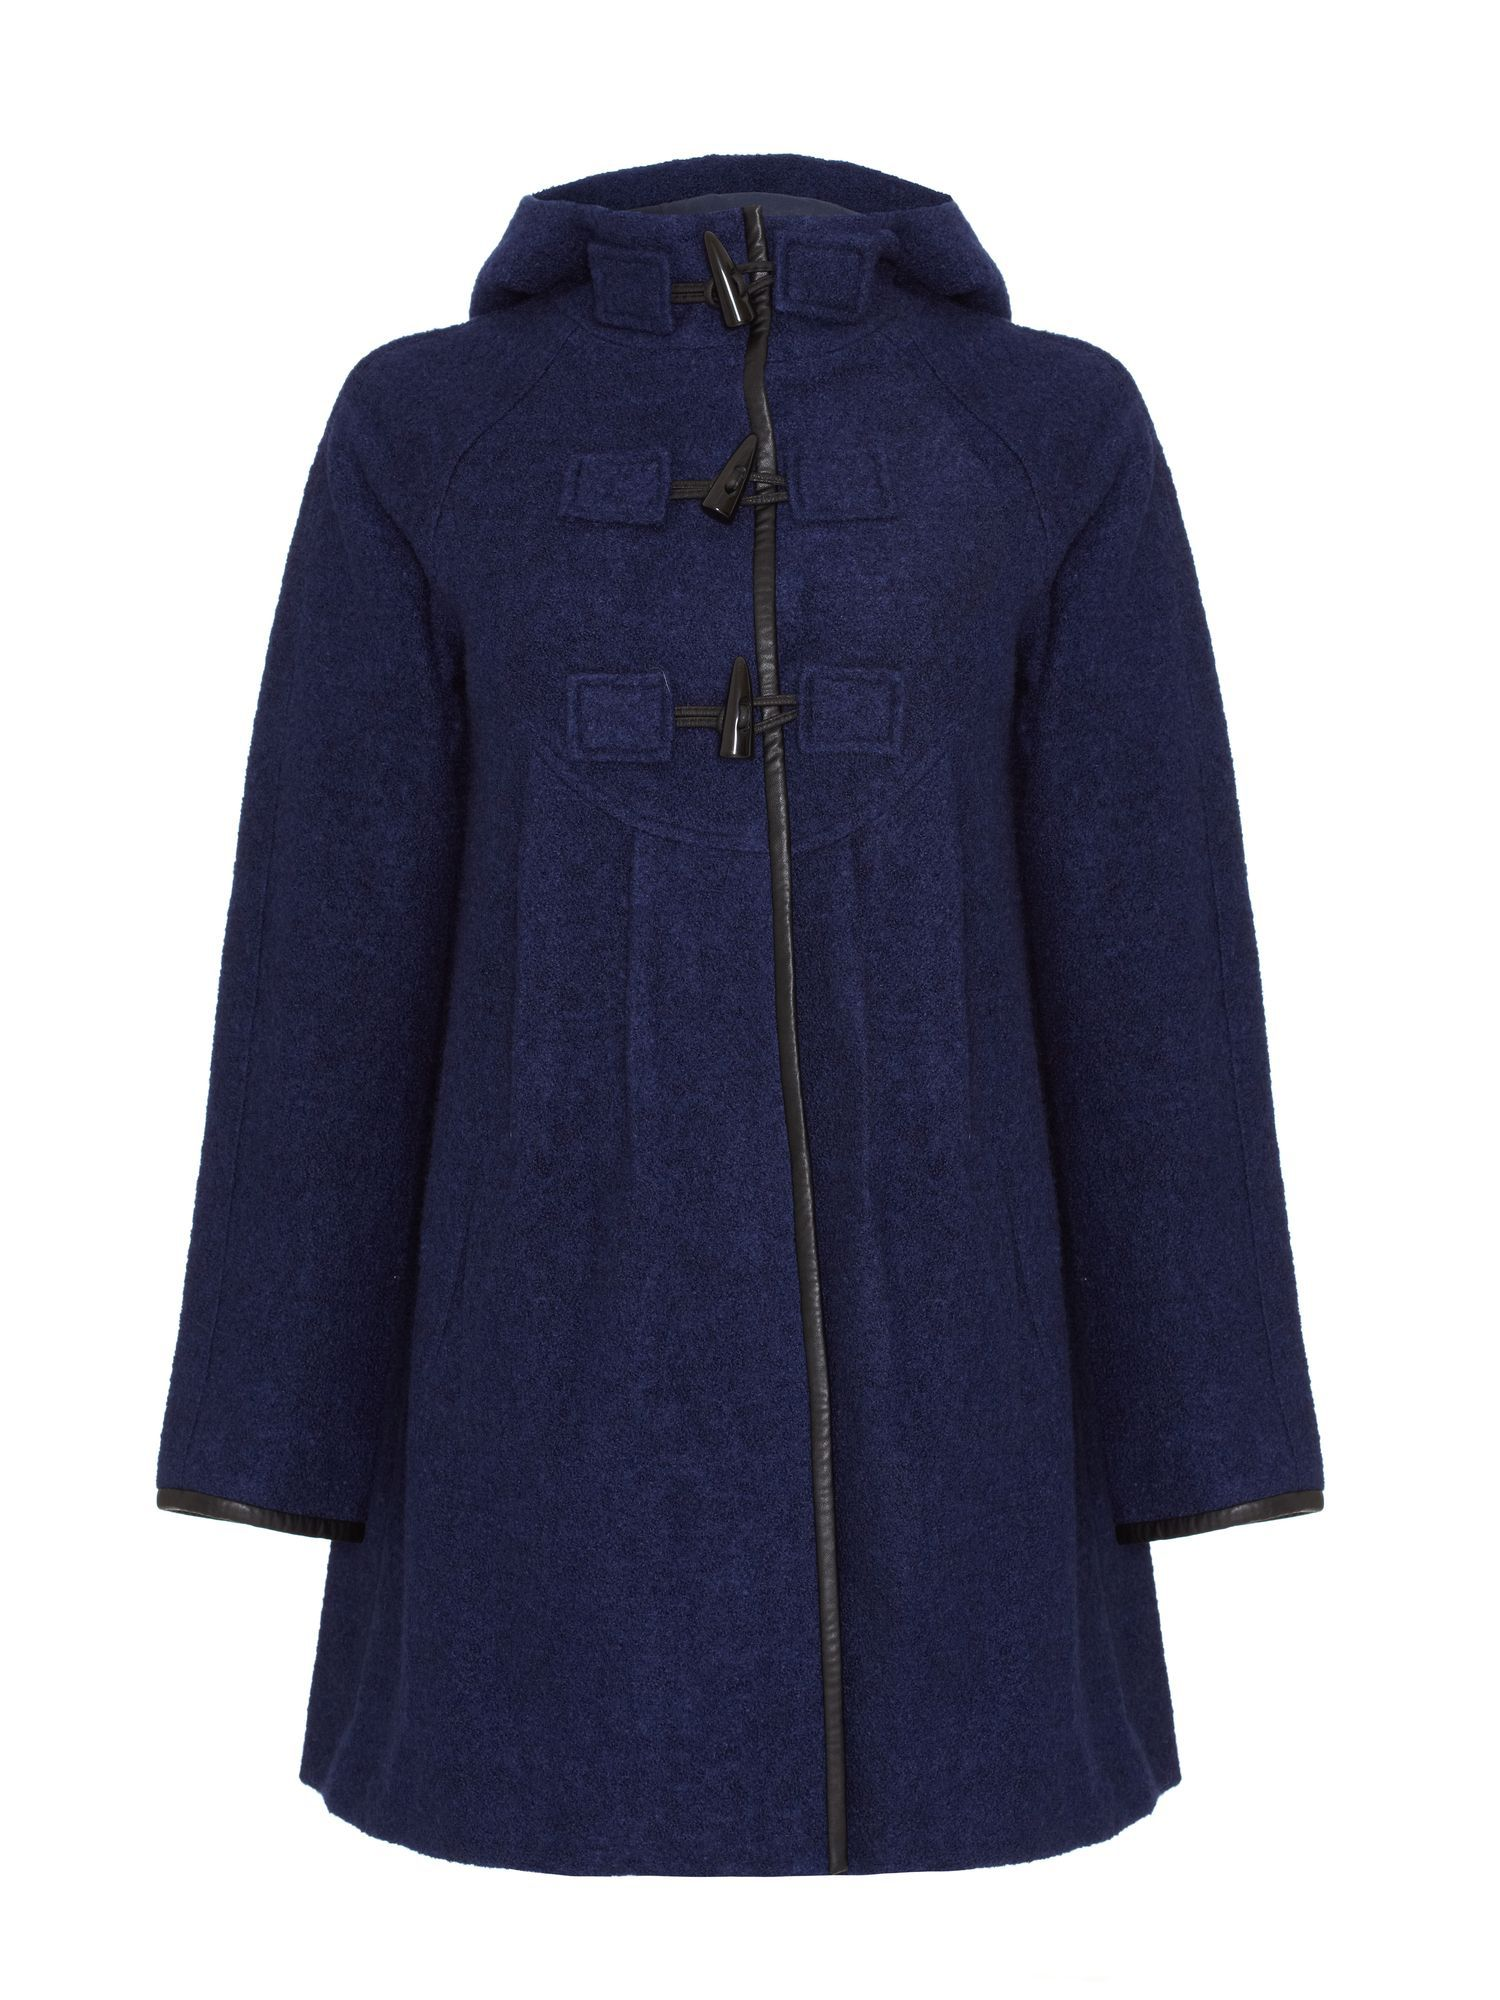 Injection duffle coat